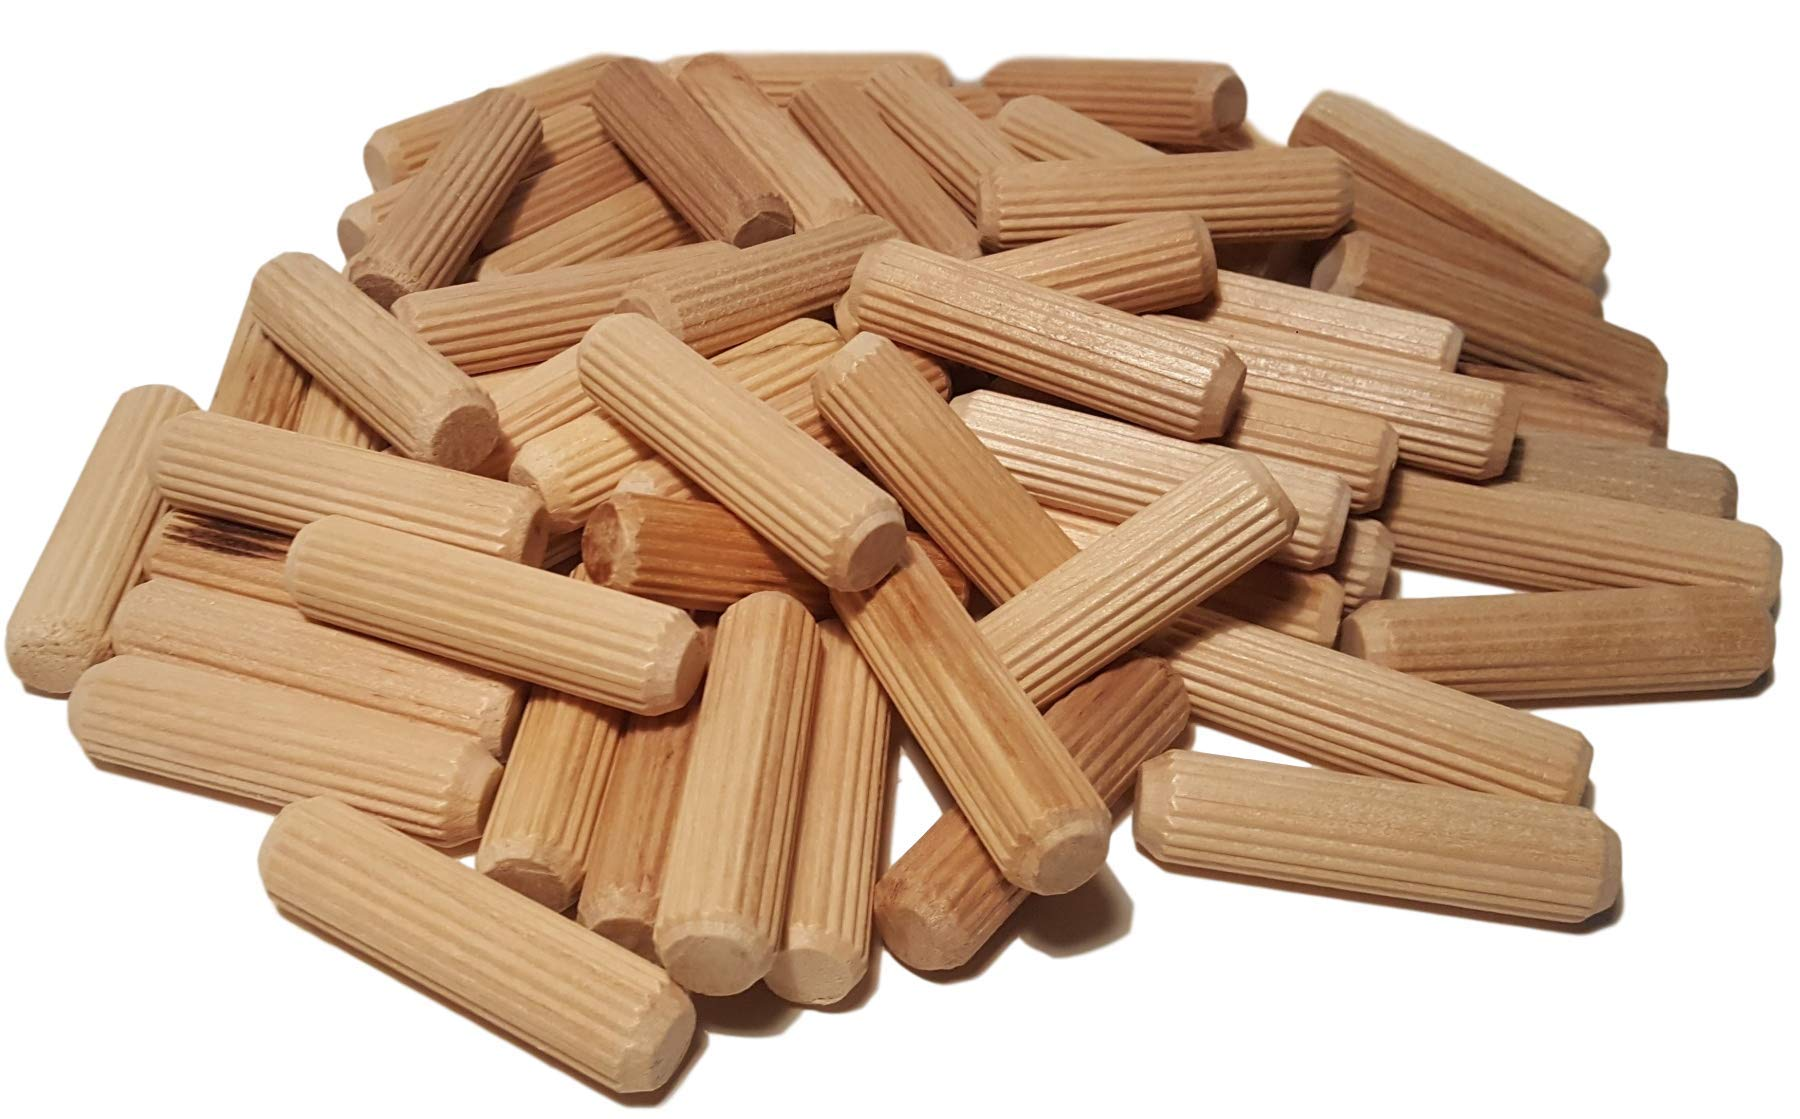 100 Pack 1/2'' x 2'' Wooden Dowel Pins Wood Kiln Dried Fluted and Beveled, Made of Hardwood in U.S.A.